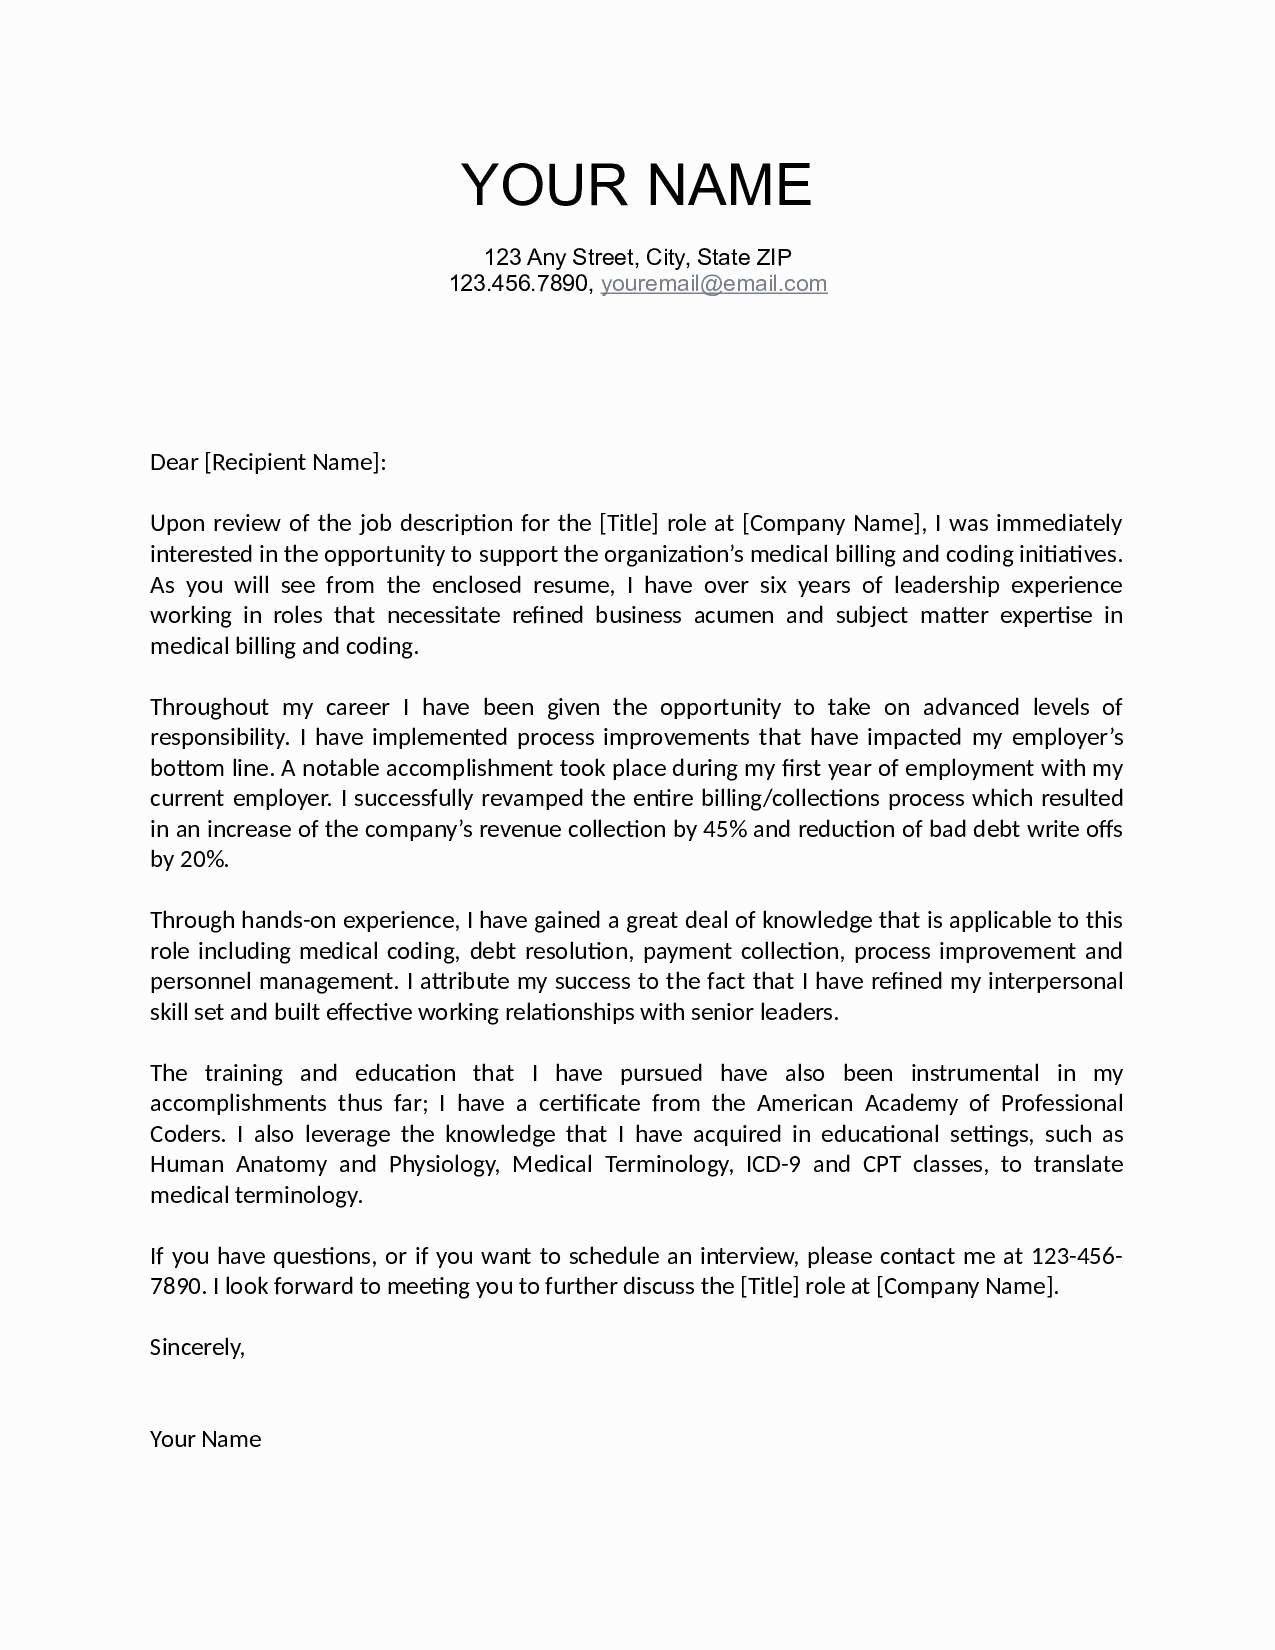 interview cover letter template Collection-Sample Cover Letter for Job Resume Valid Job Fer Letter Template Us Copy Od Consultant Cover 7-o